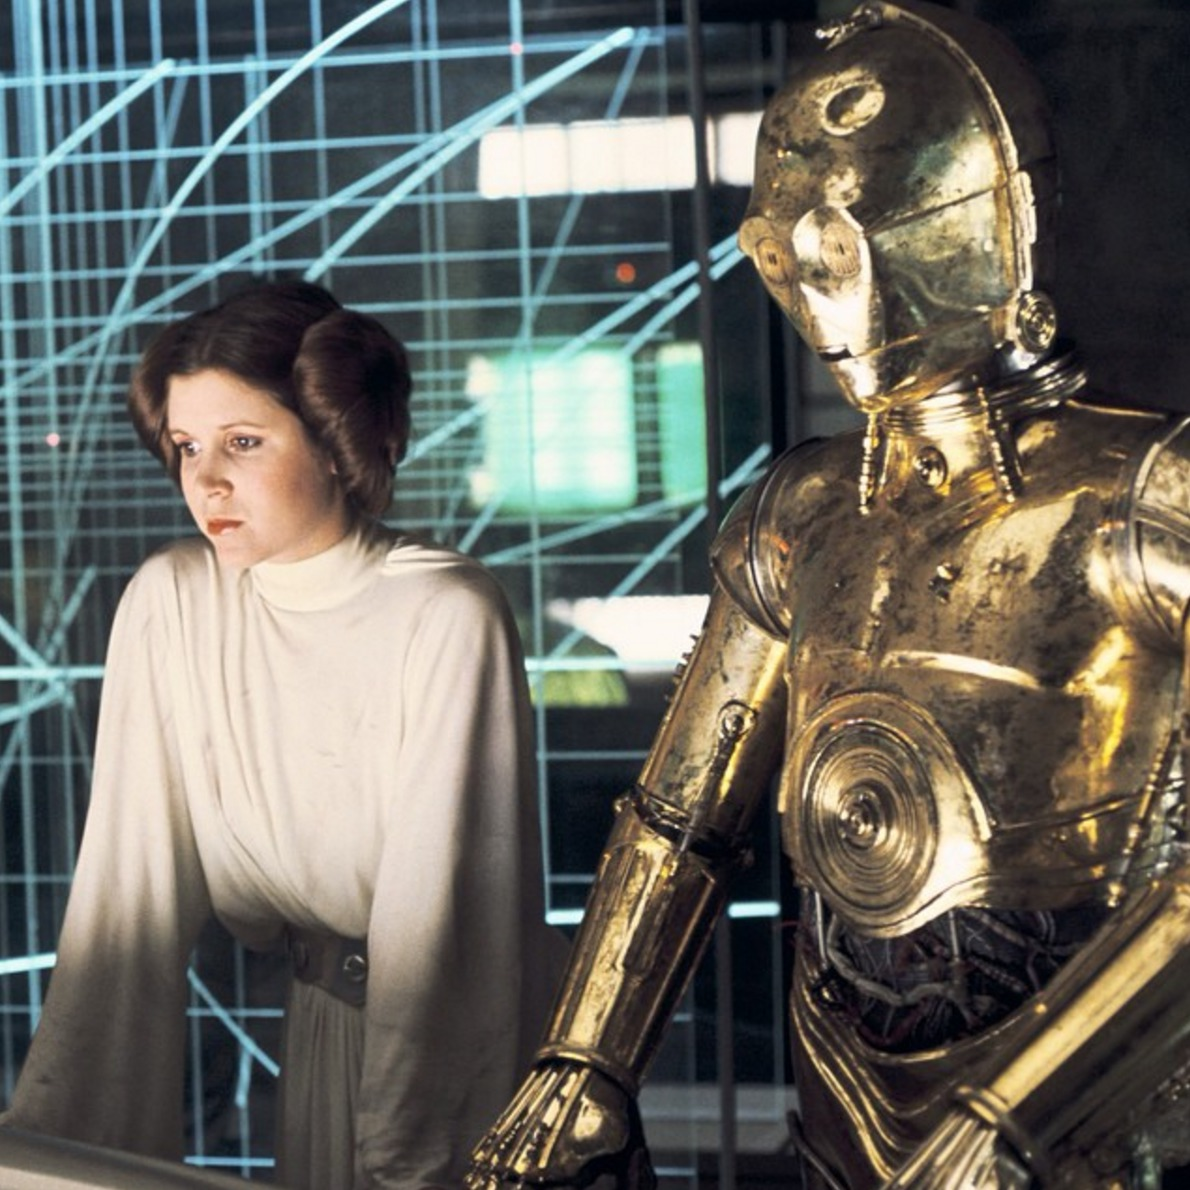 This is a really dark theory about the droids in 'Star Wars'